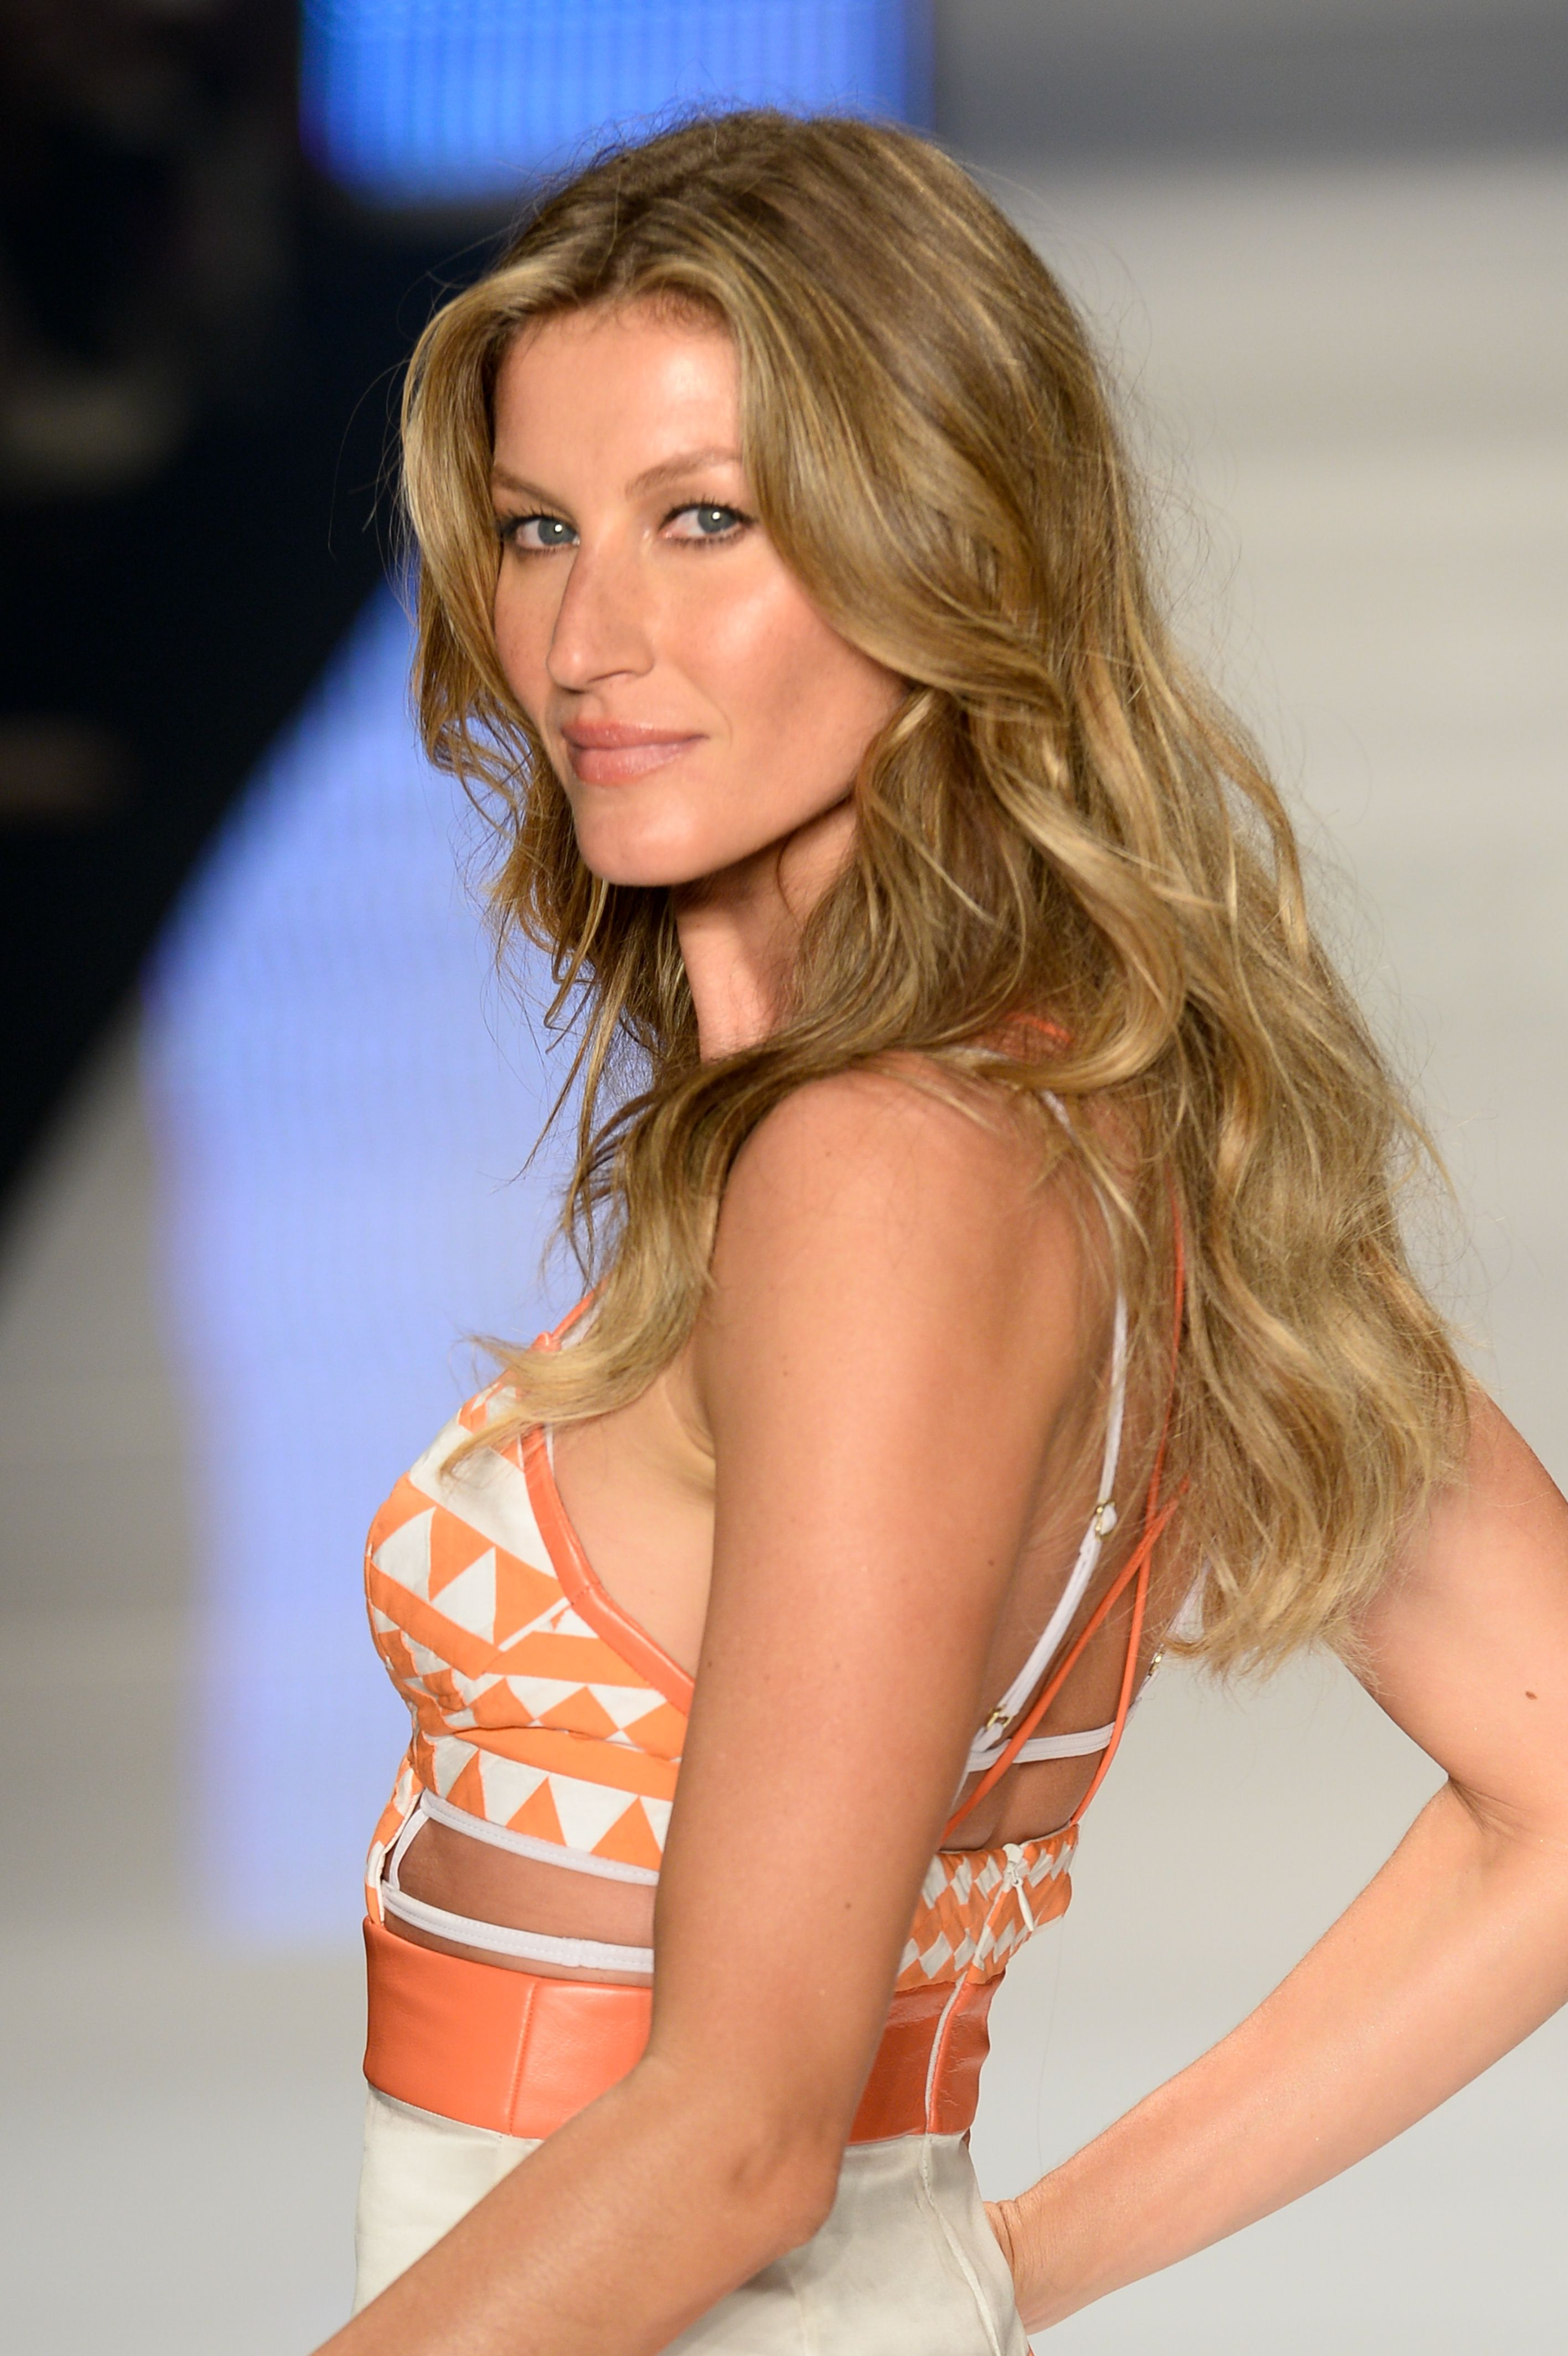 b3ca92794 Gisele Shares That She Cried on the Runway Because She Had to Walk ...